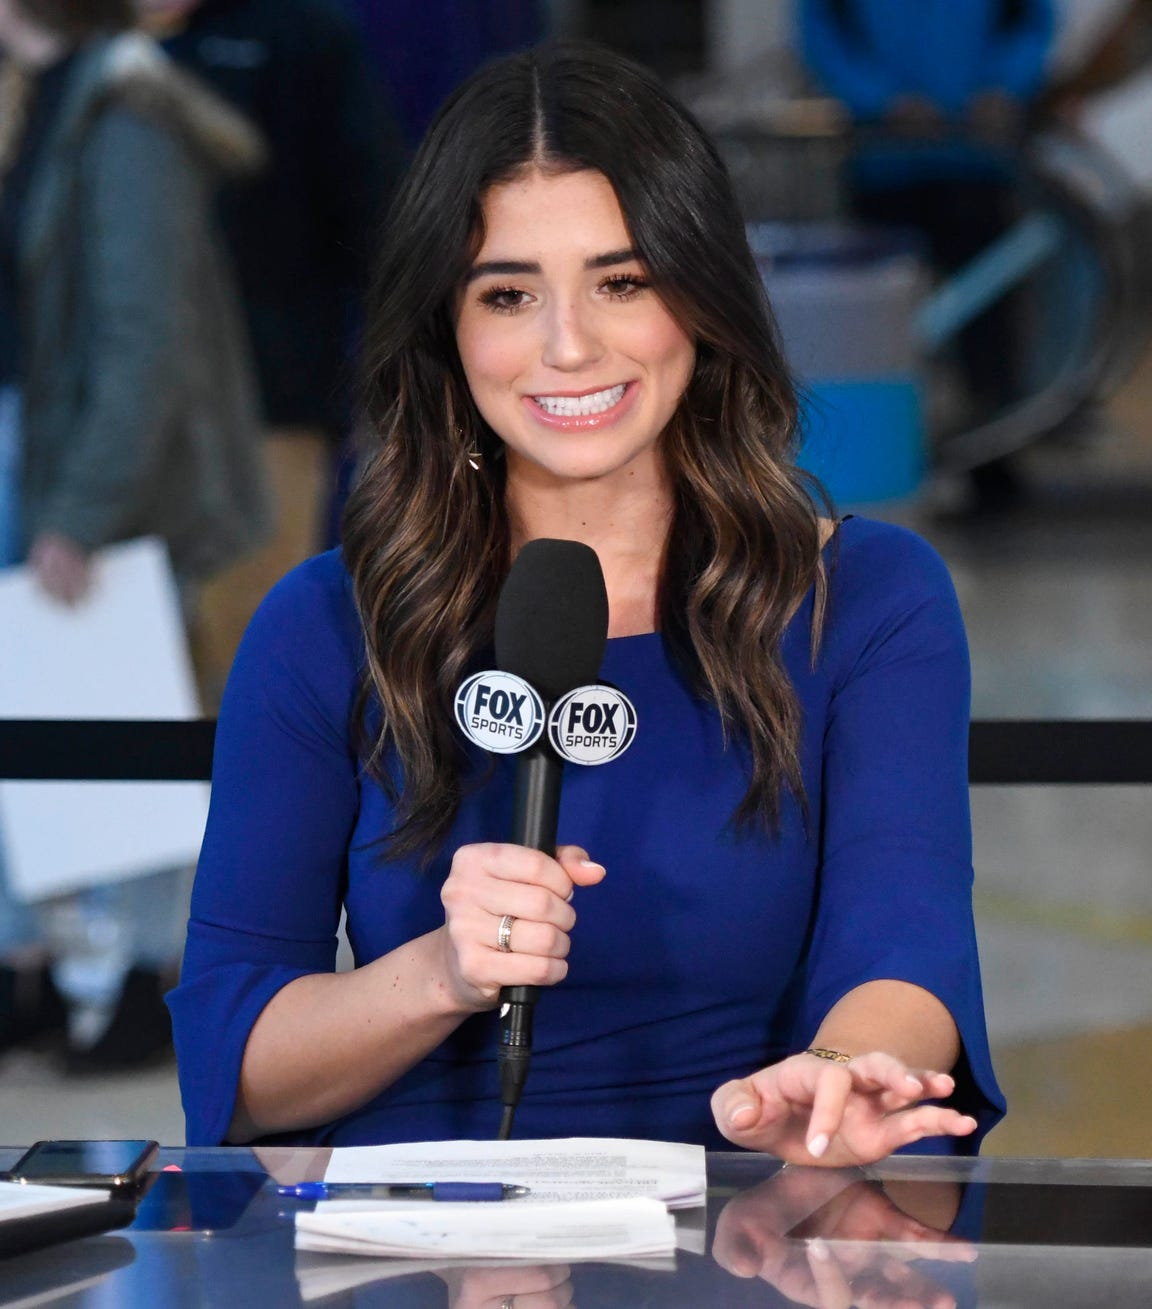 In this Wednesday, Dec. 19, 2018 photo, Ashley ShahAhmadi talks to the TV camera prior to the Charlotte Hornets game against the Cleveland Cavaliers at the Spectrum Center in Charlotte, N.C.